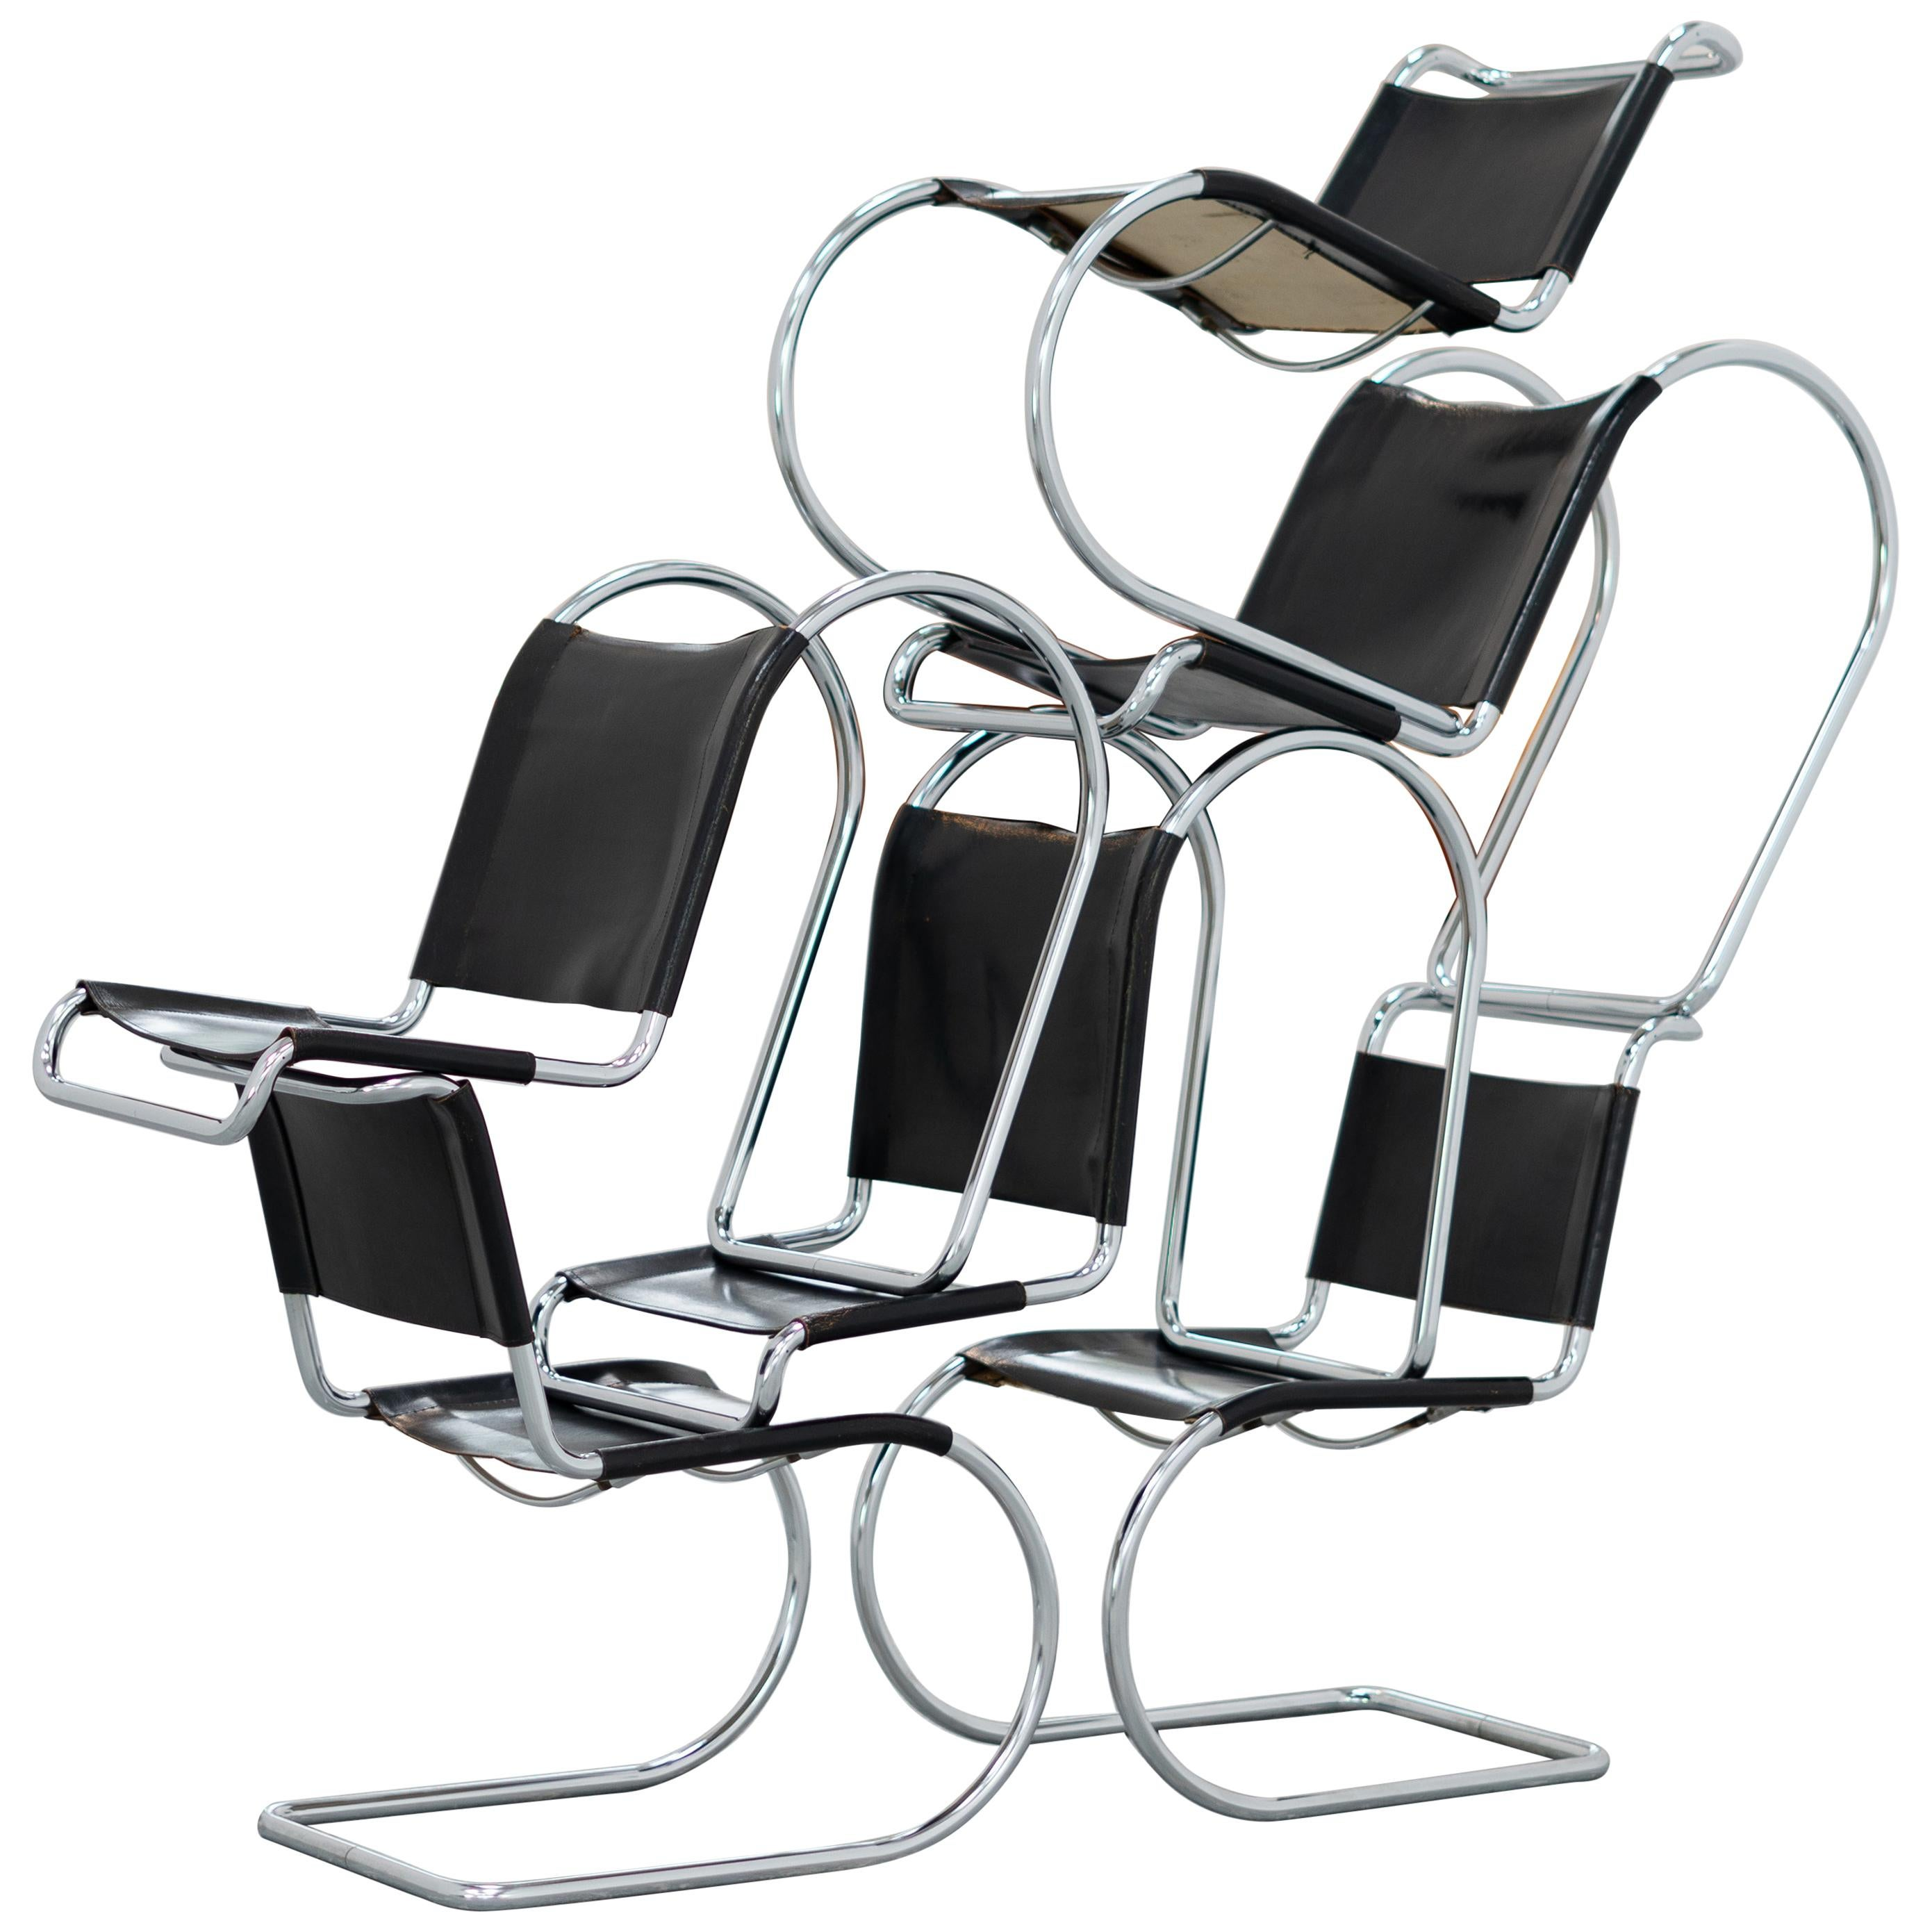 Ludwig Mies van der Rohe, MR10 Cantilever Chair, Black Leather for Thonet, 1927